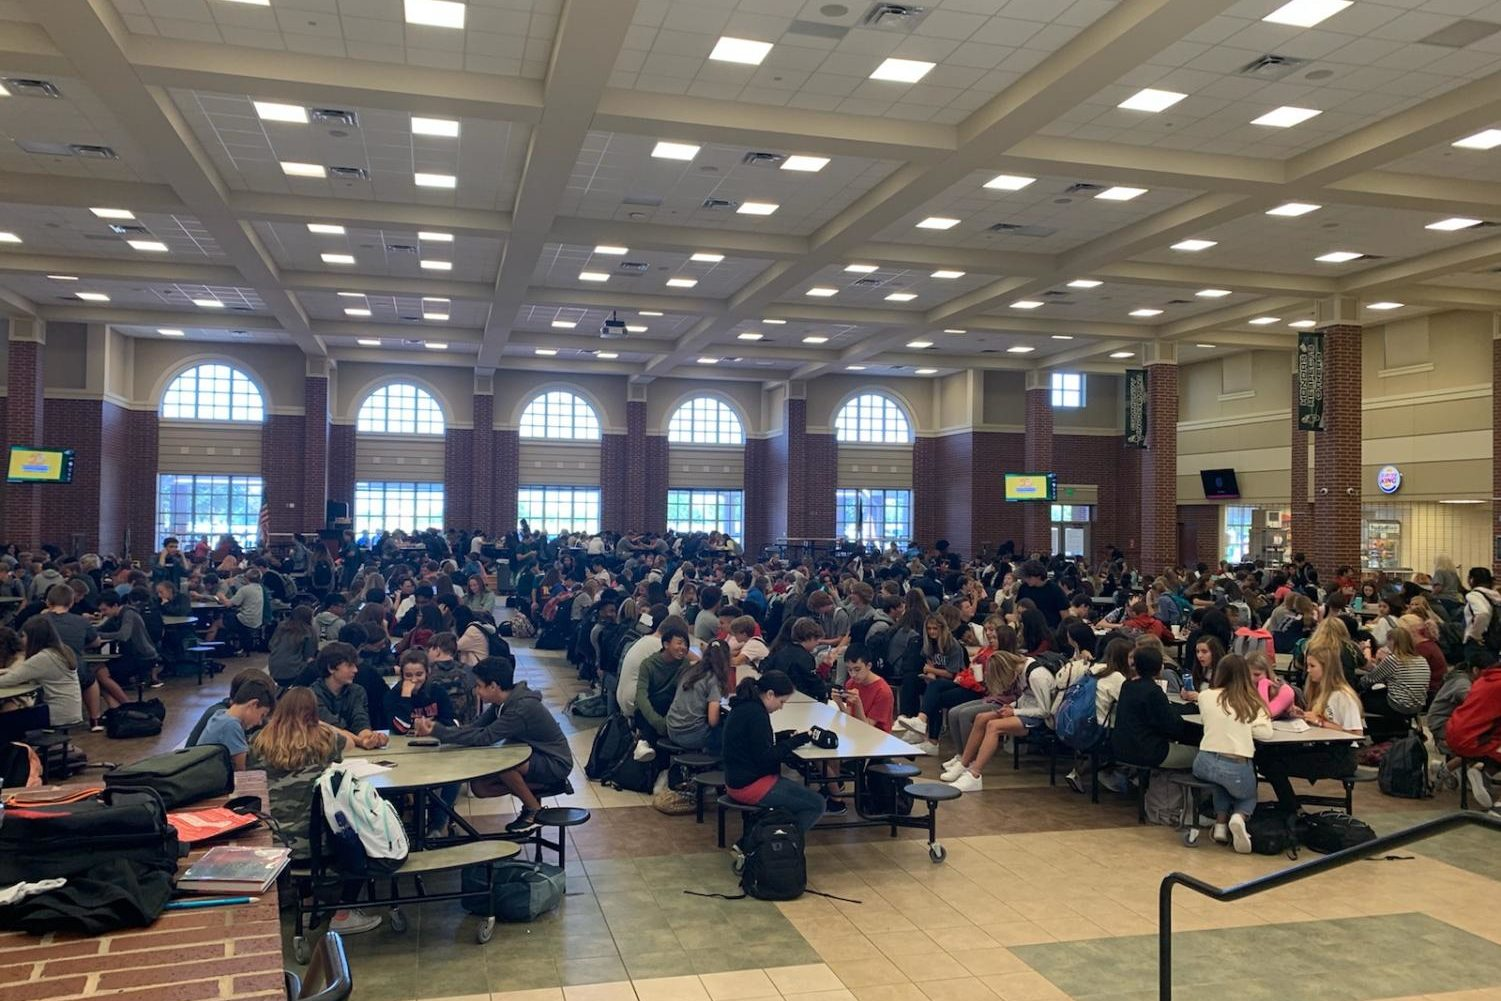 Before the draft system, the cafeteria faced overcrowding as pictured above on September 26. With the draft, more students stay in classrooms.